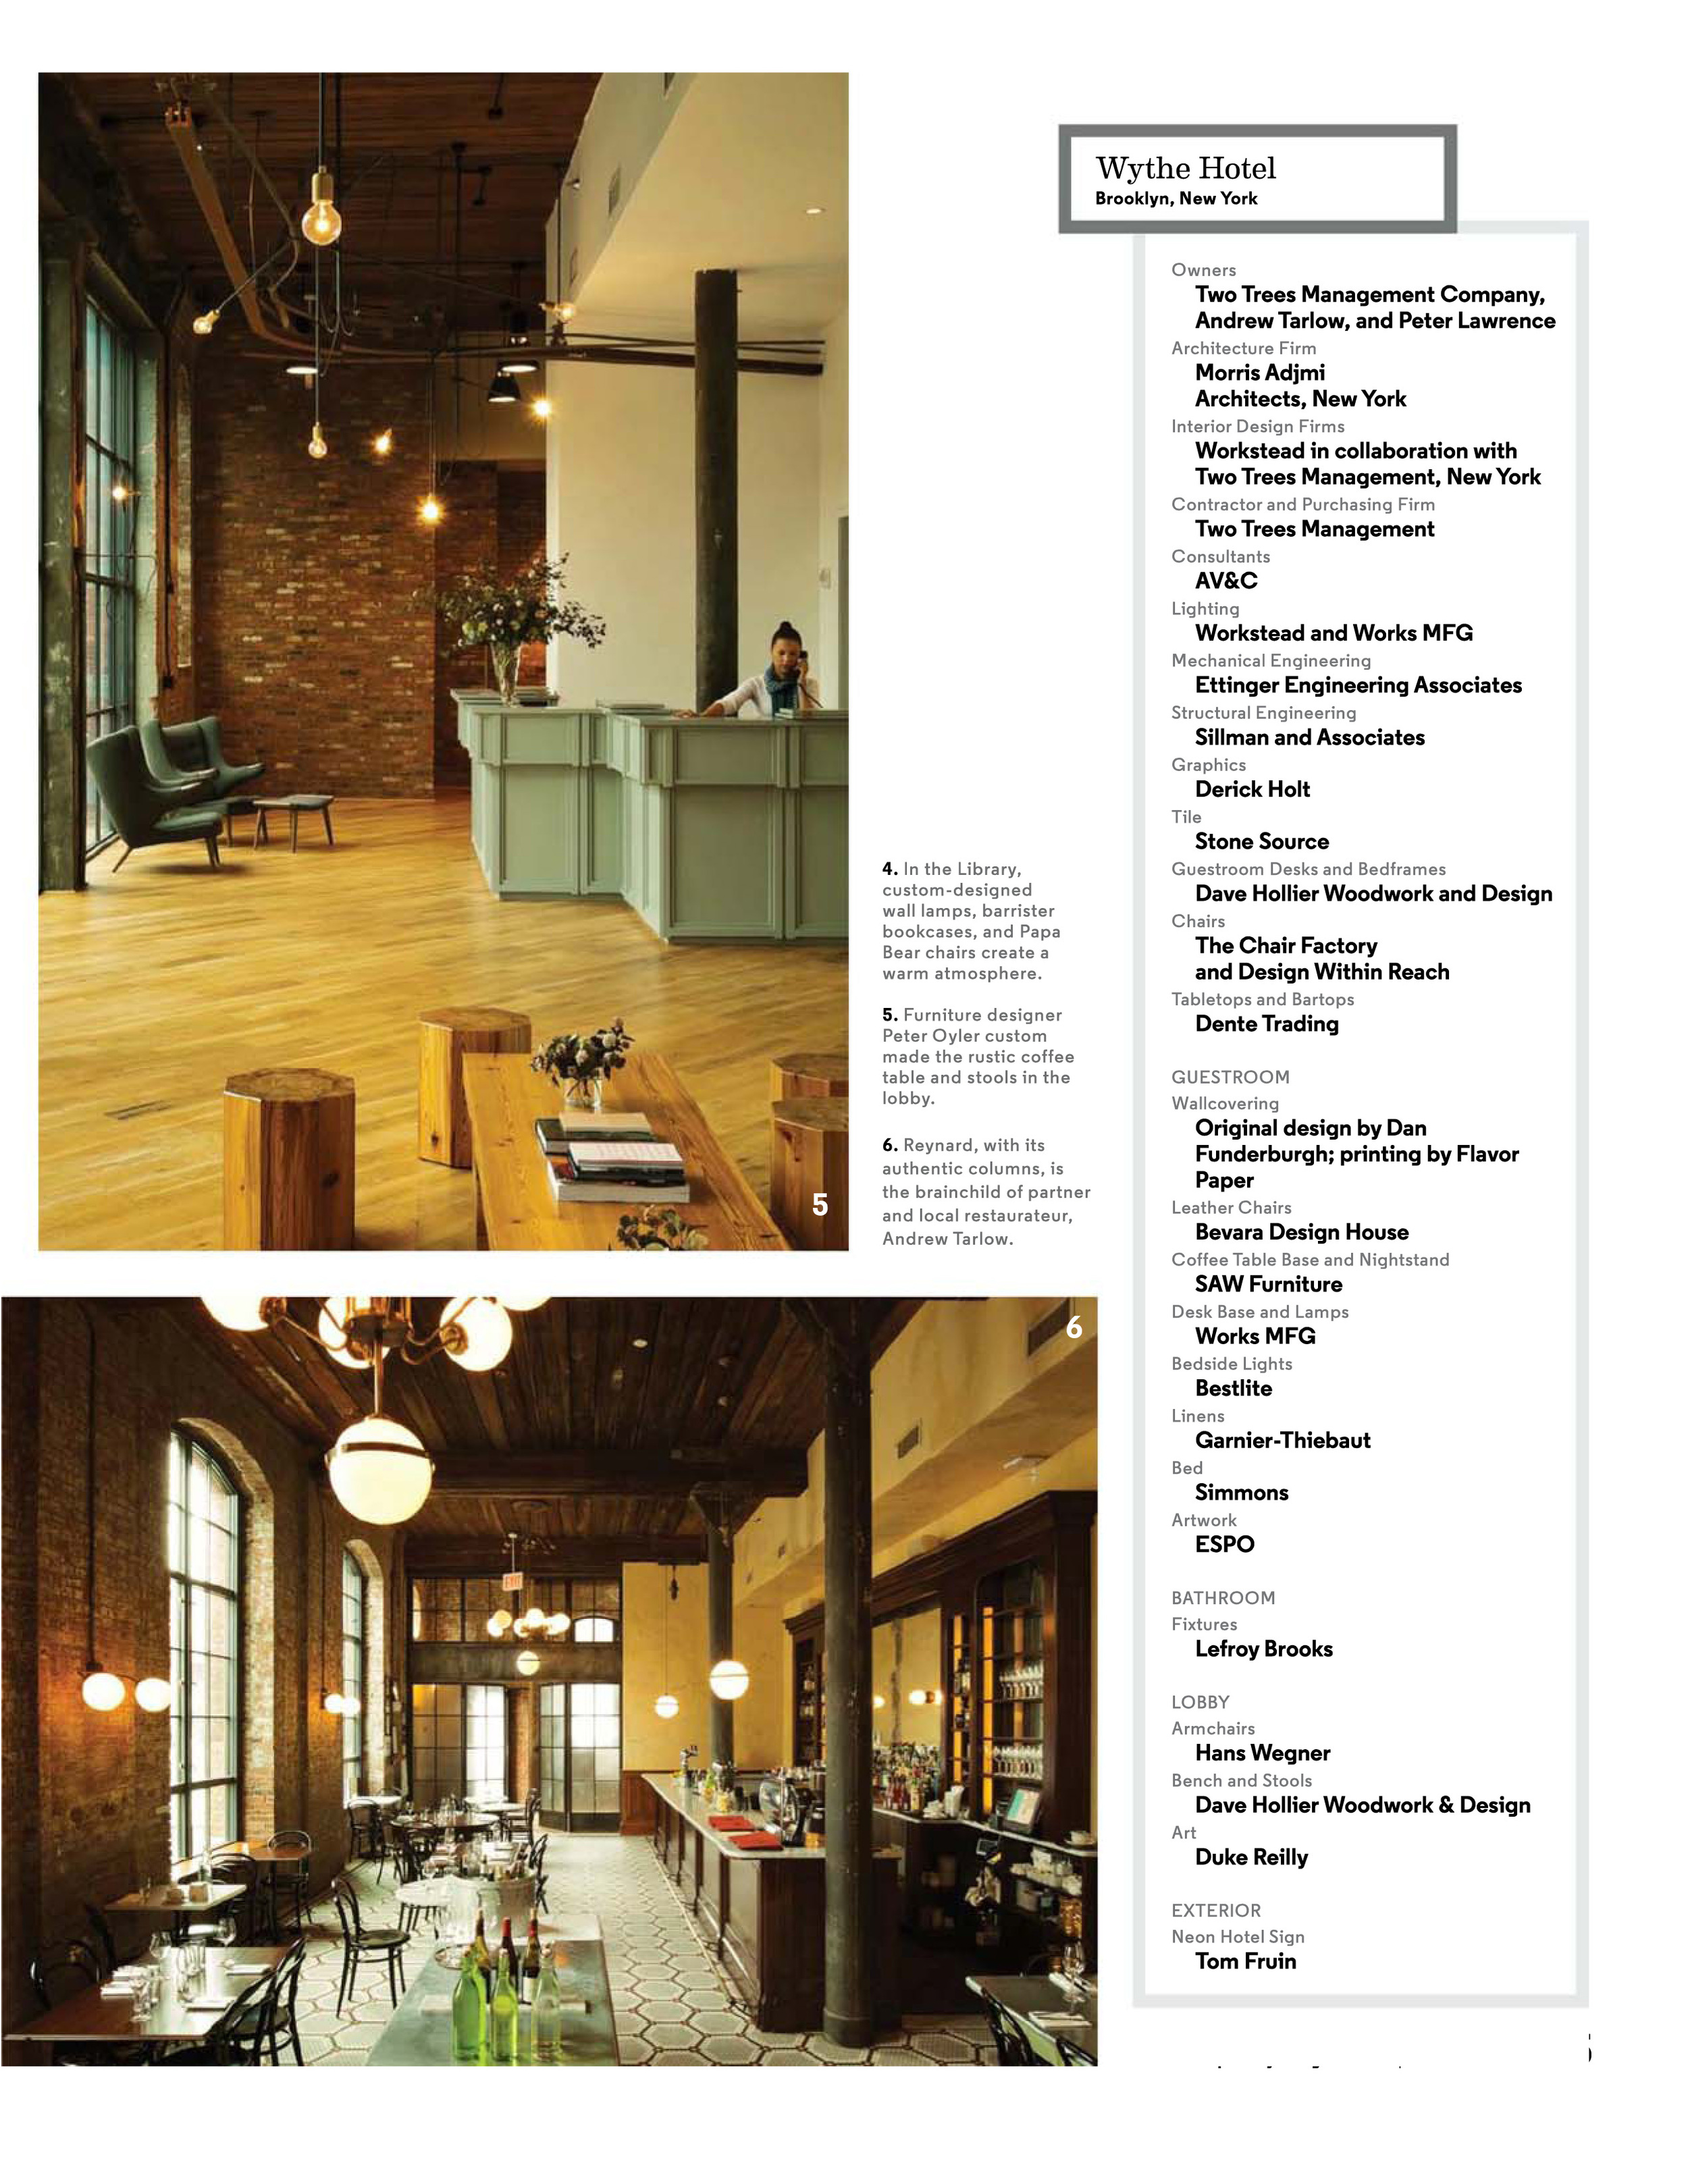 HospitalityDesign_Sept2012.jpg